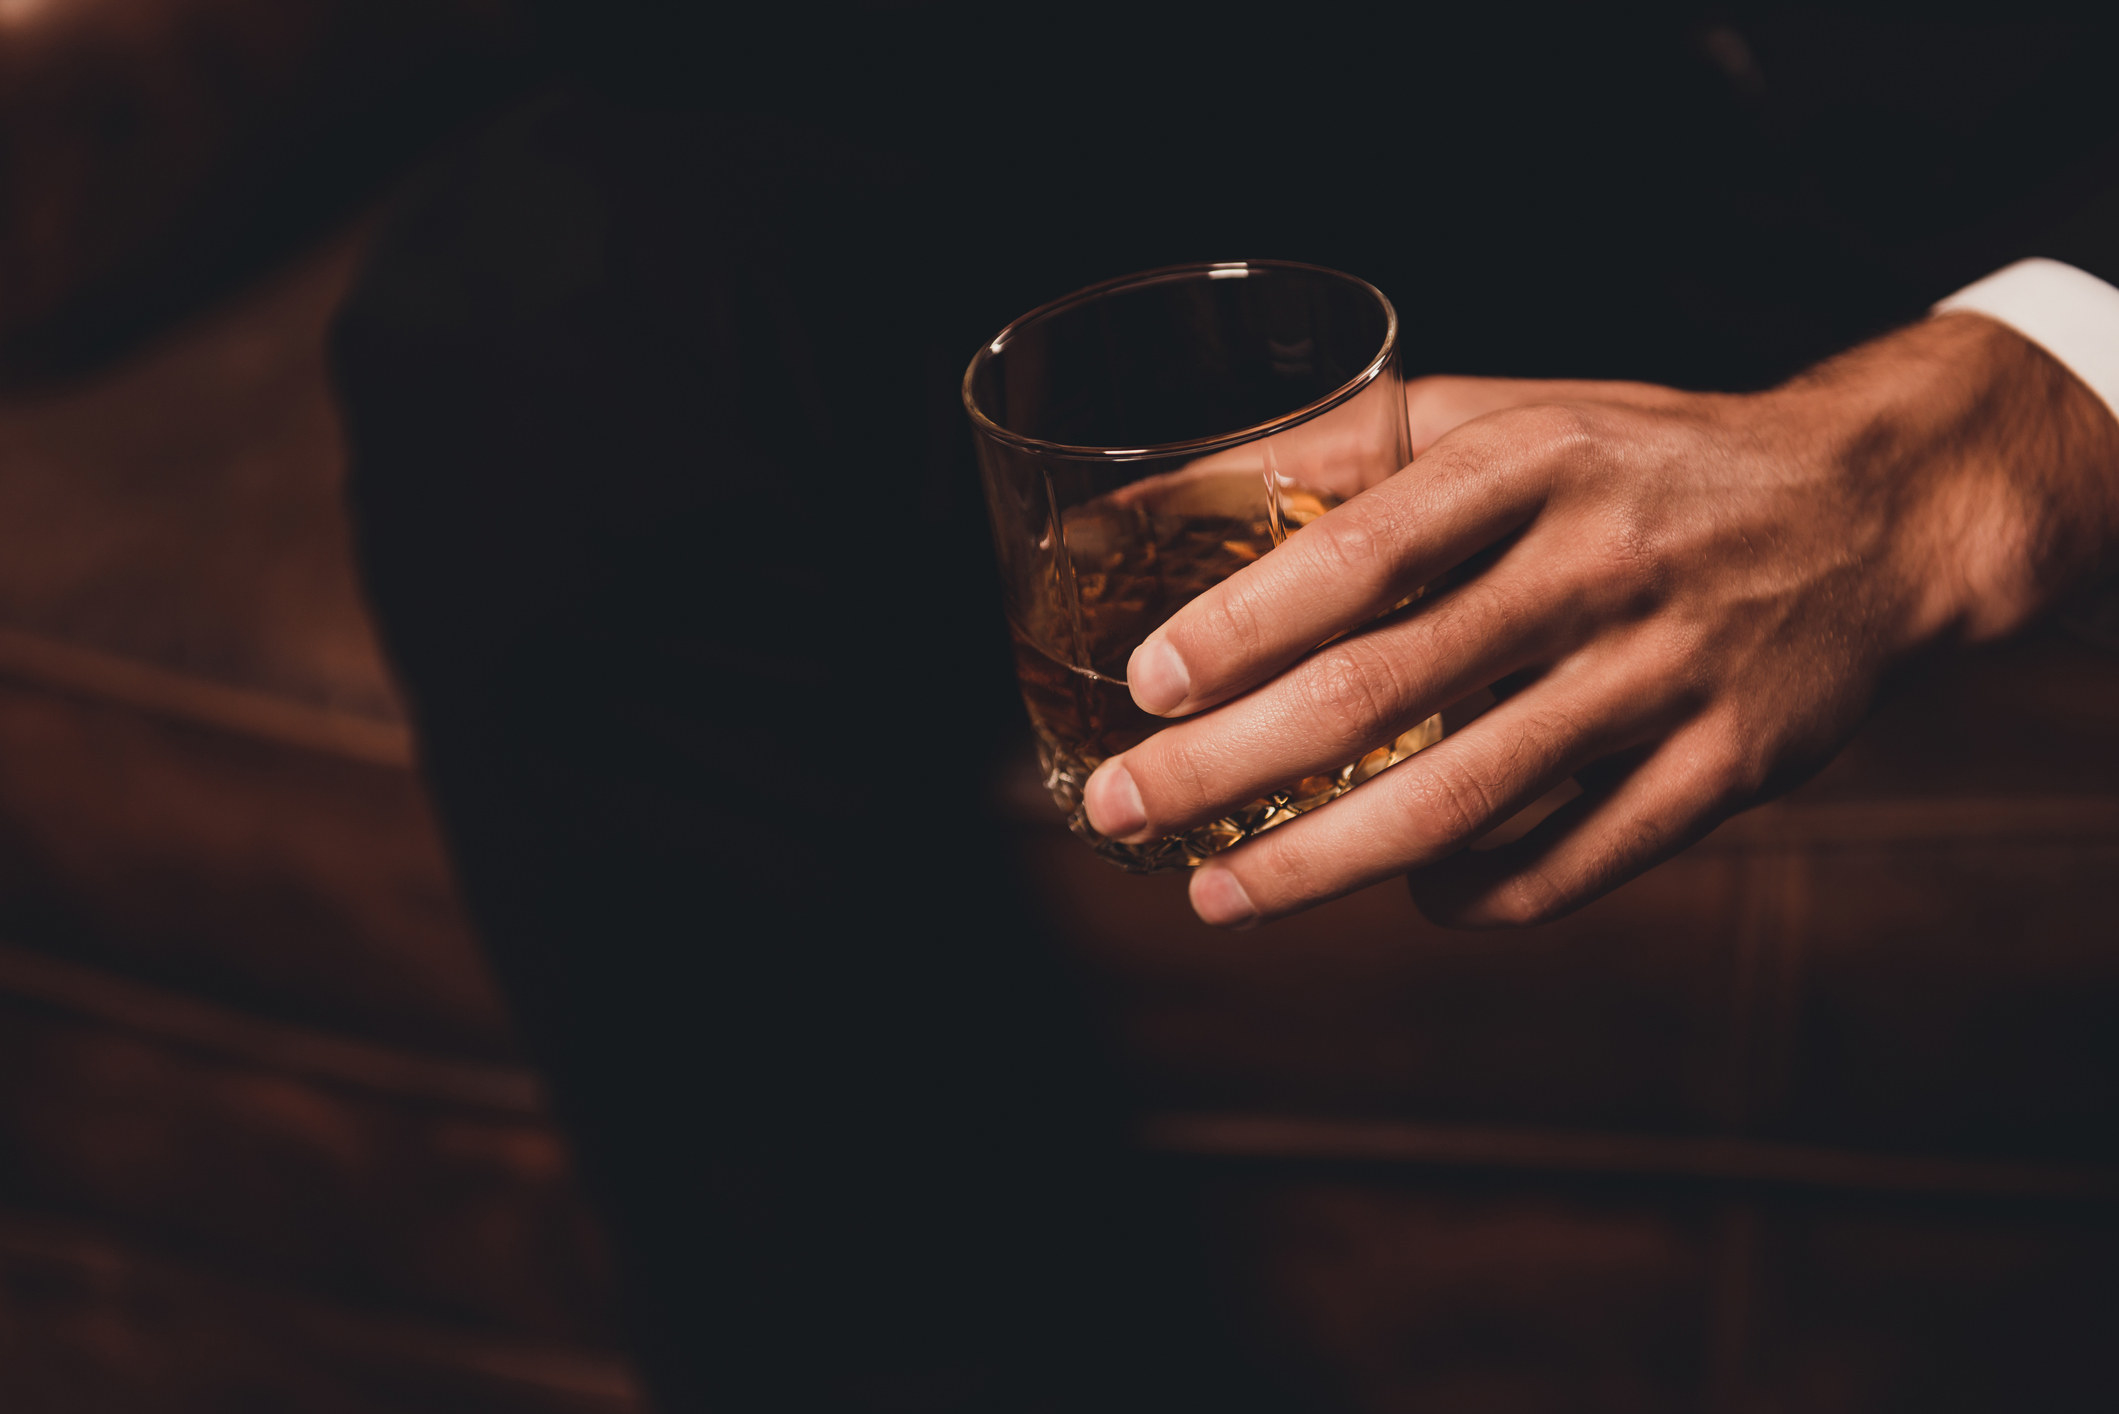 Close-up of man's hand holding class of whiskey